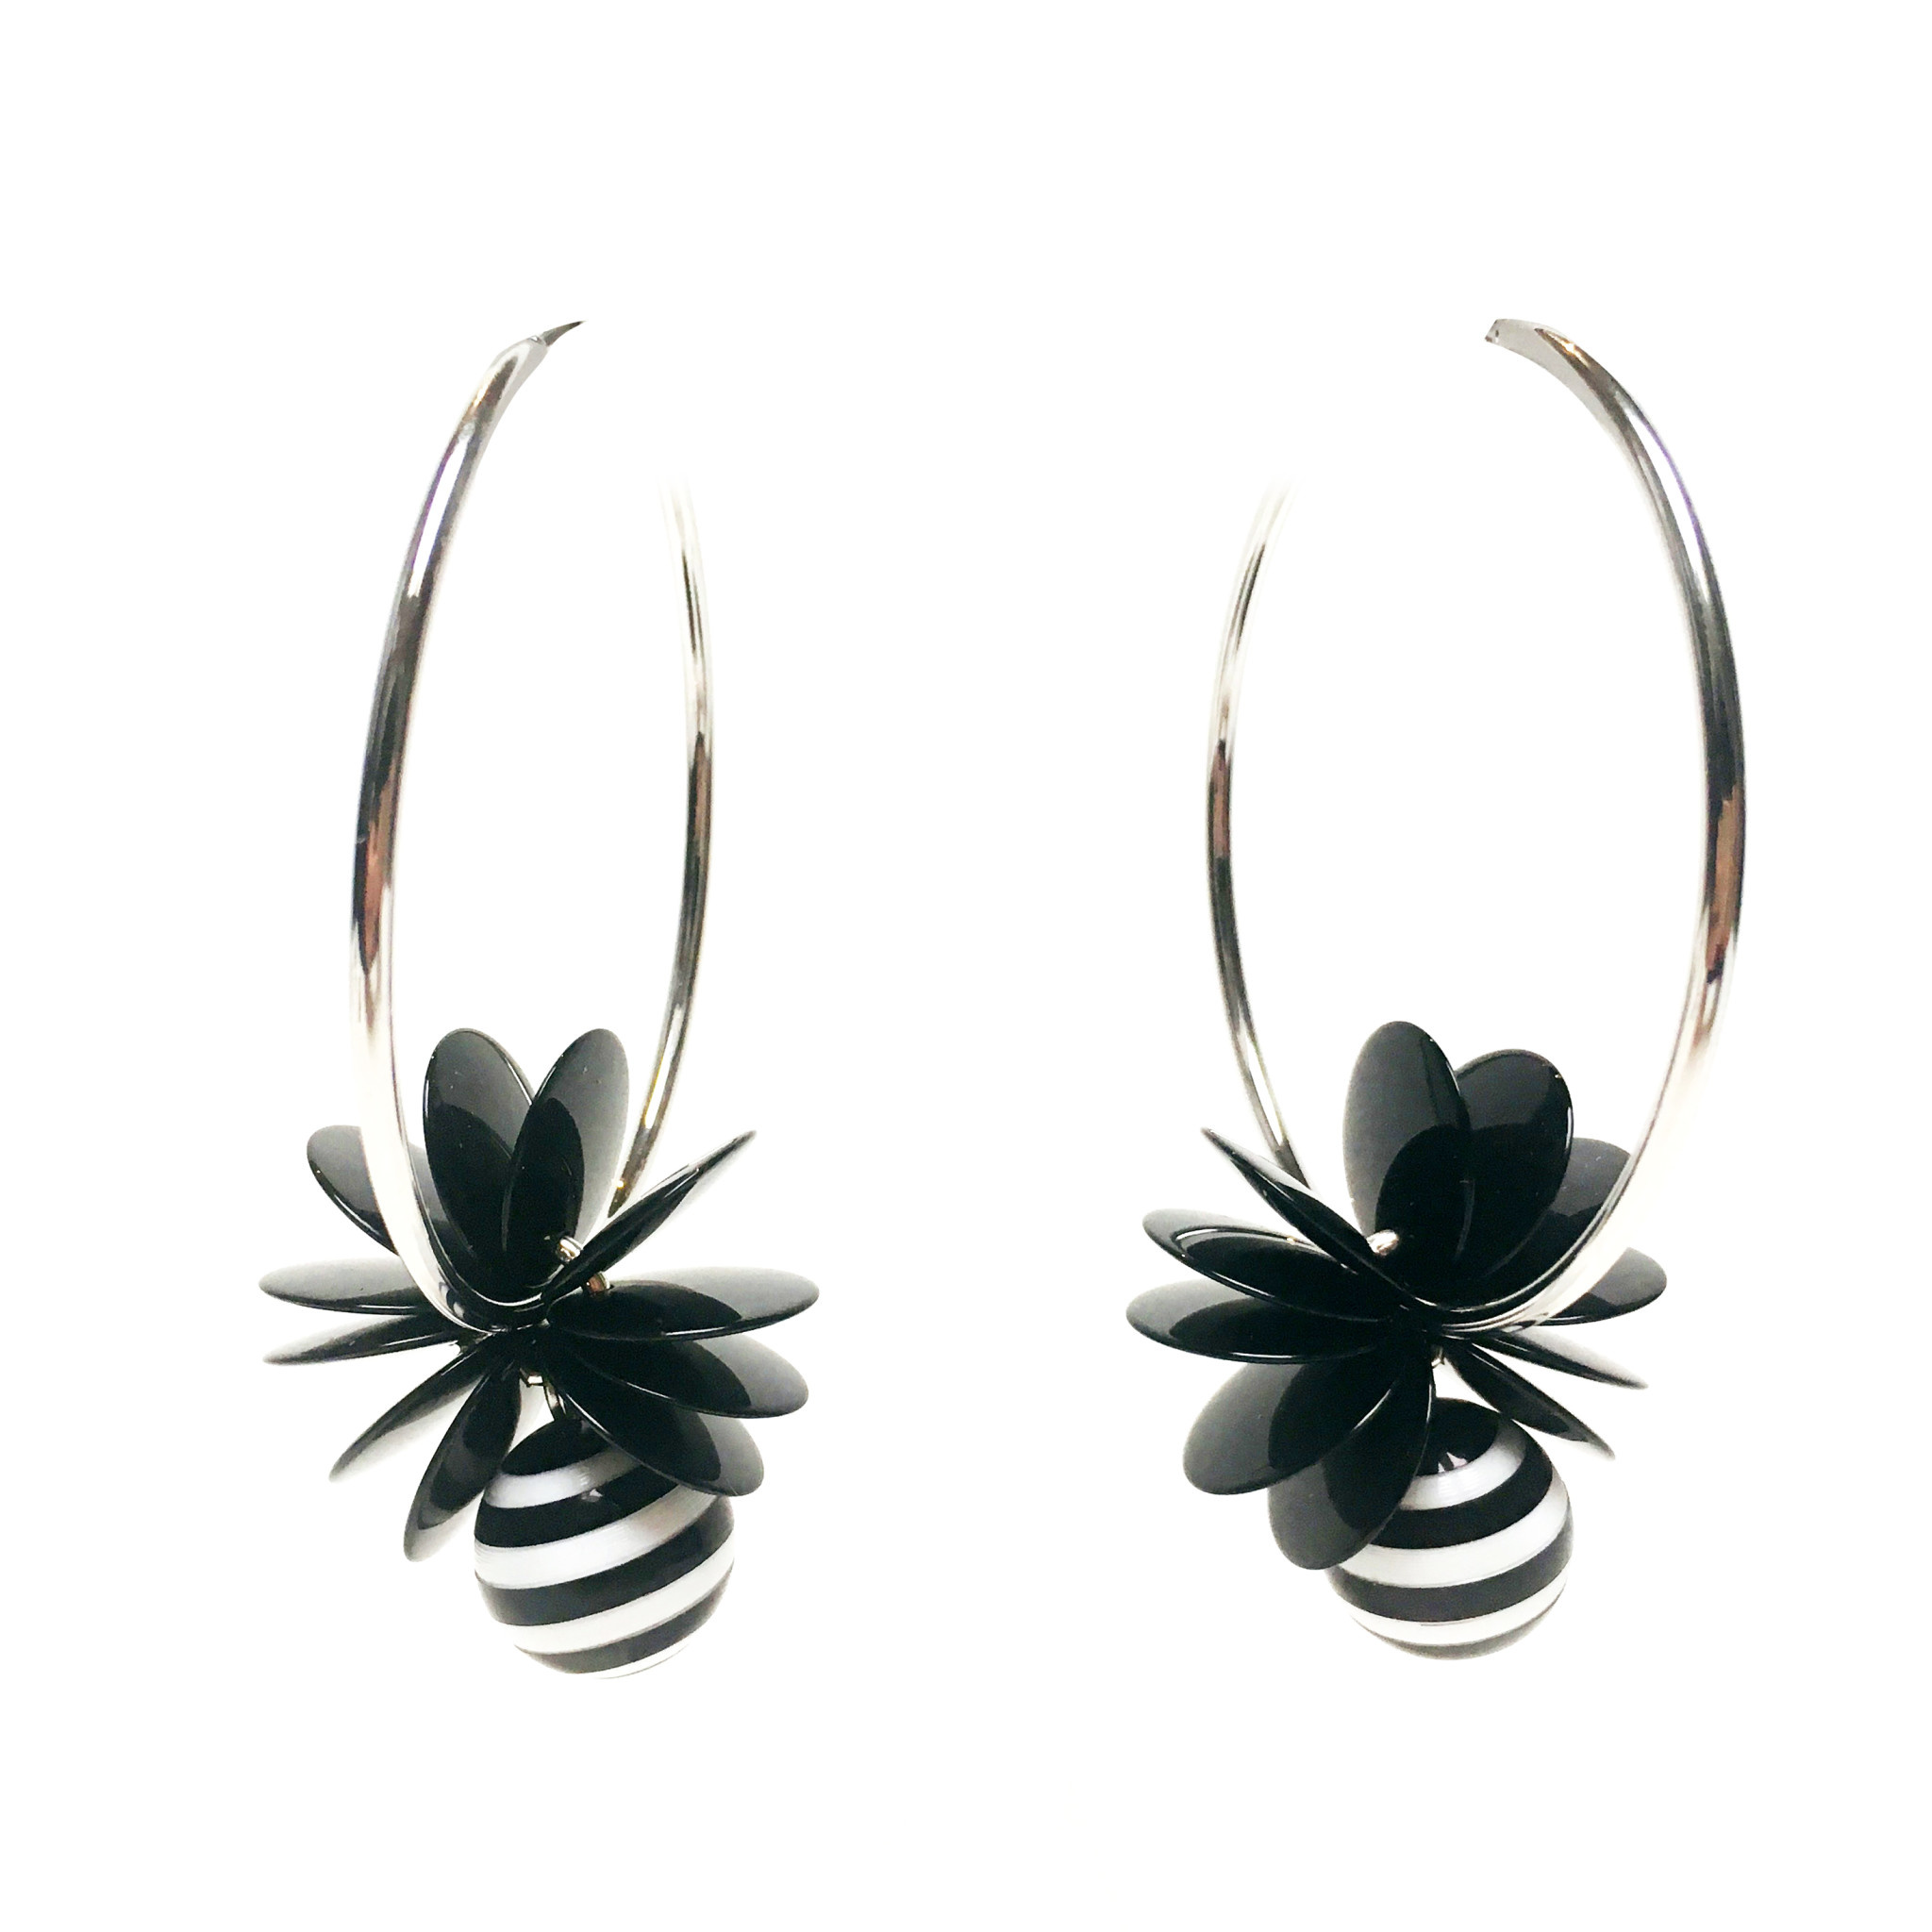 Antura Antura Hoop Stripe Earrings